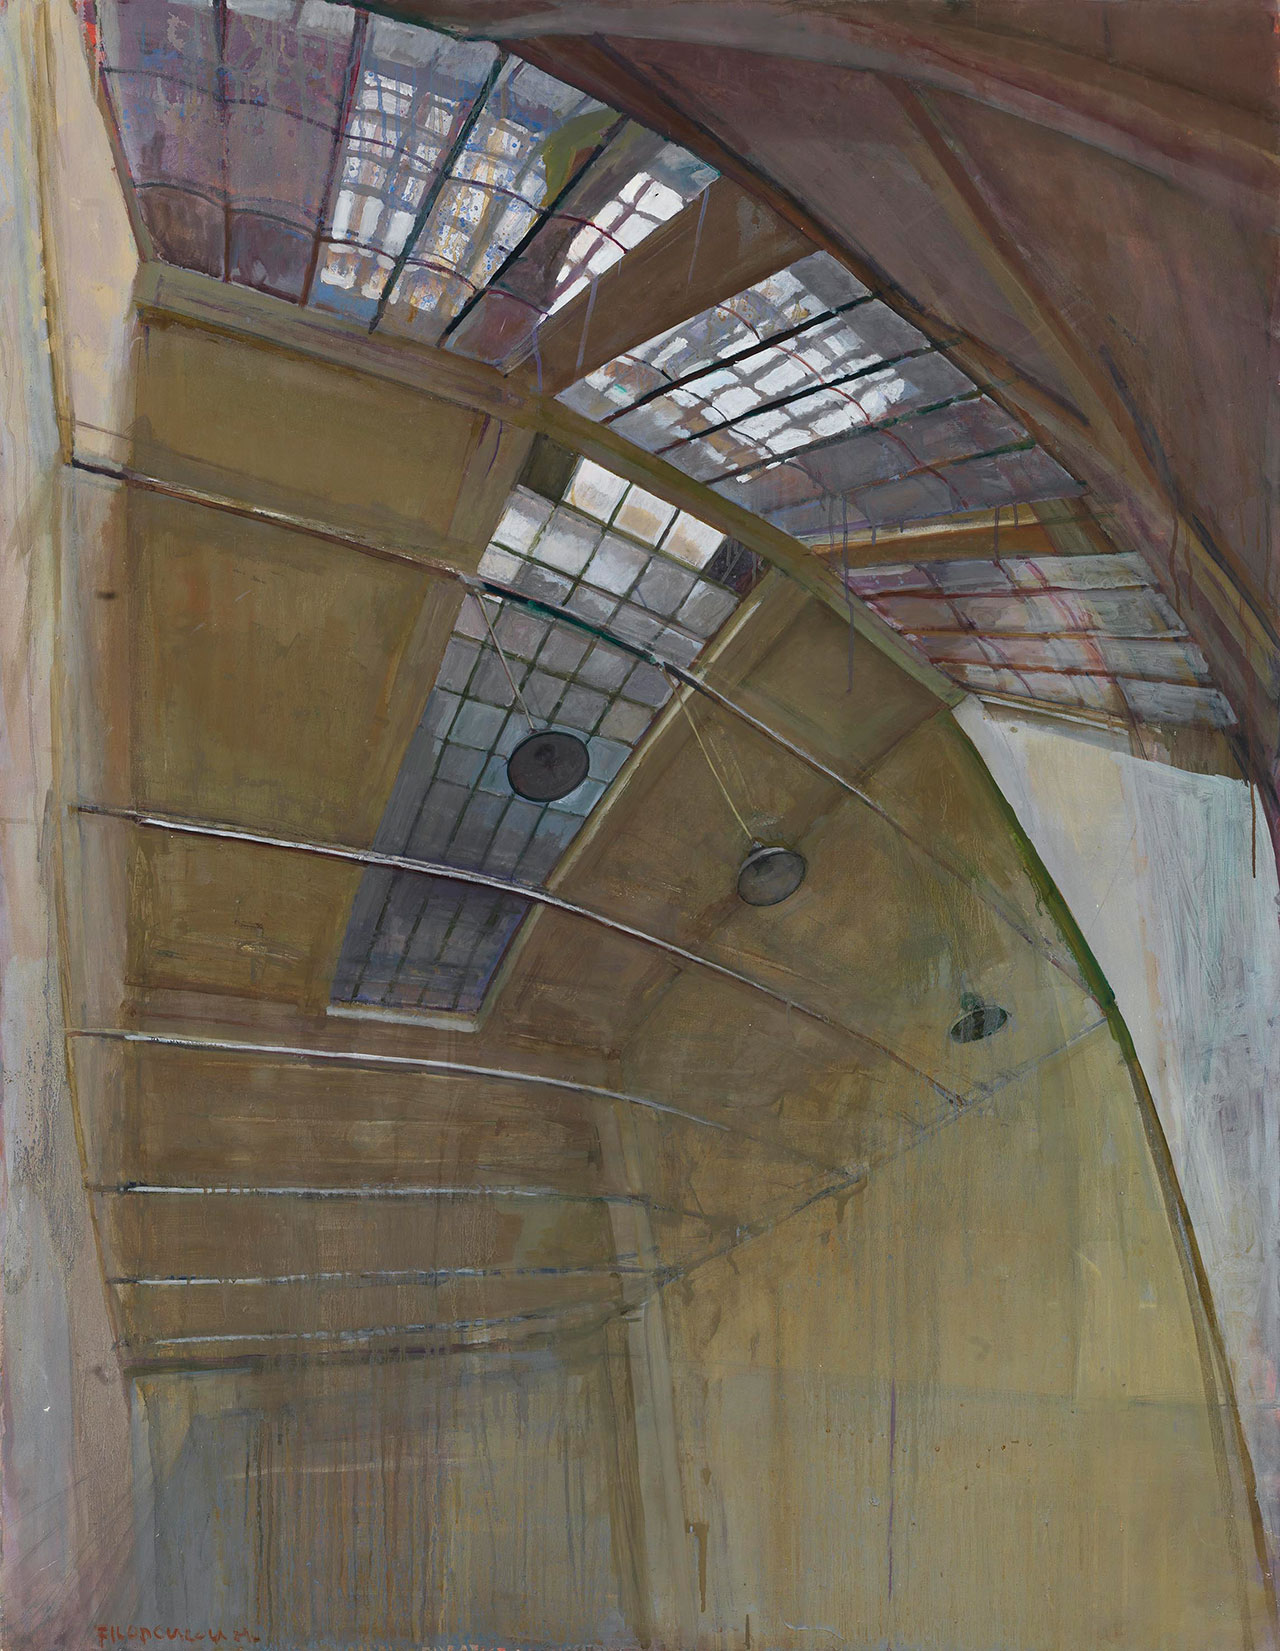 Maria Filopoulou, Skylight, 1988. Oil on canvas, 146 x 113cm.